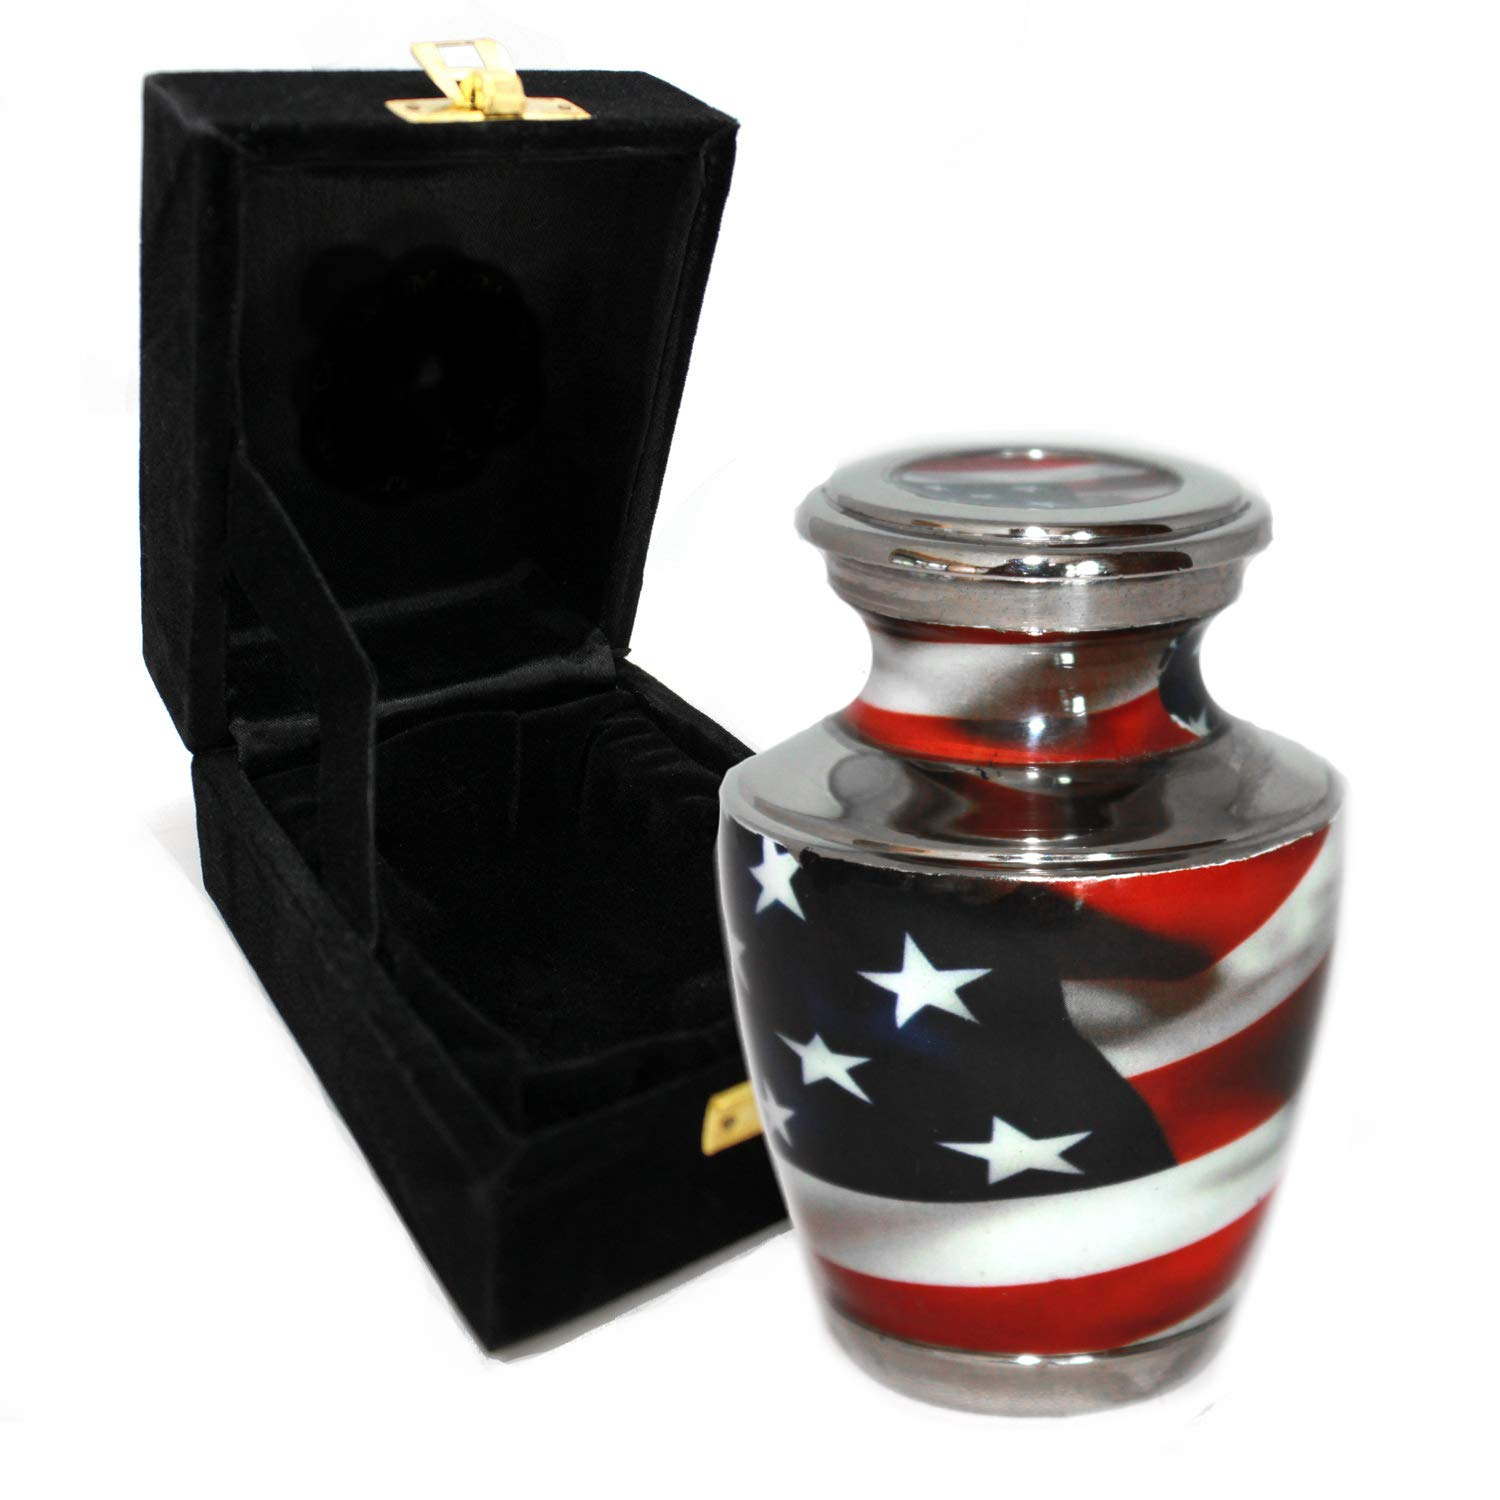 Flag Cremation Urns for Adult Ashes - for Funeral, Niche, Columbarium or Burial - Urns for Ashes - Large, Medium, Extra Large and Keepsake (American Flag, Small/Keepsake) by Commemorative Cremation Urns